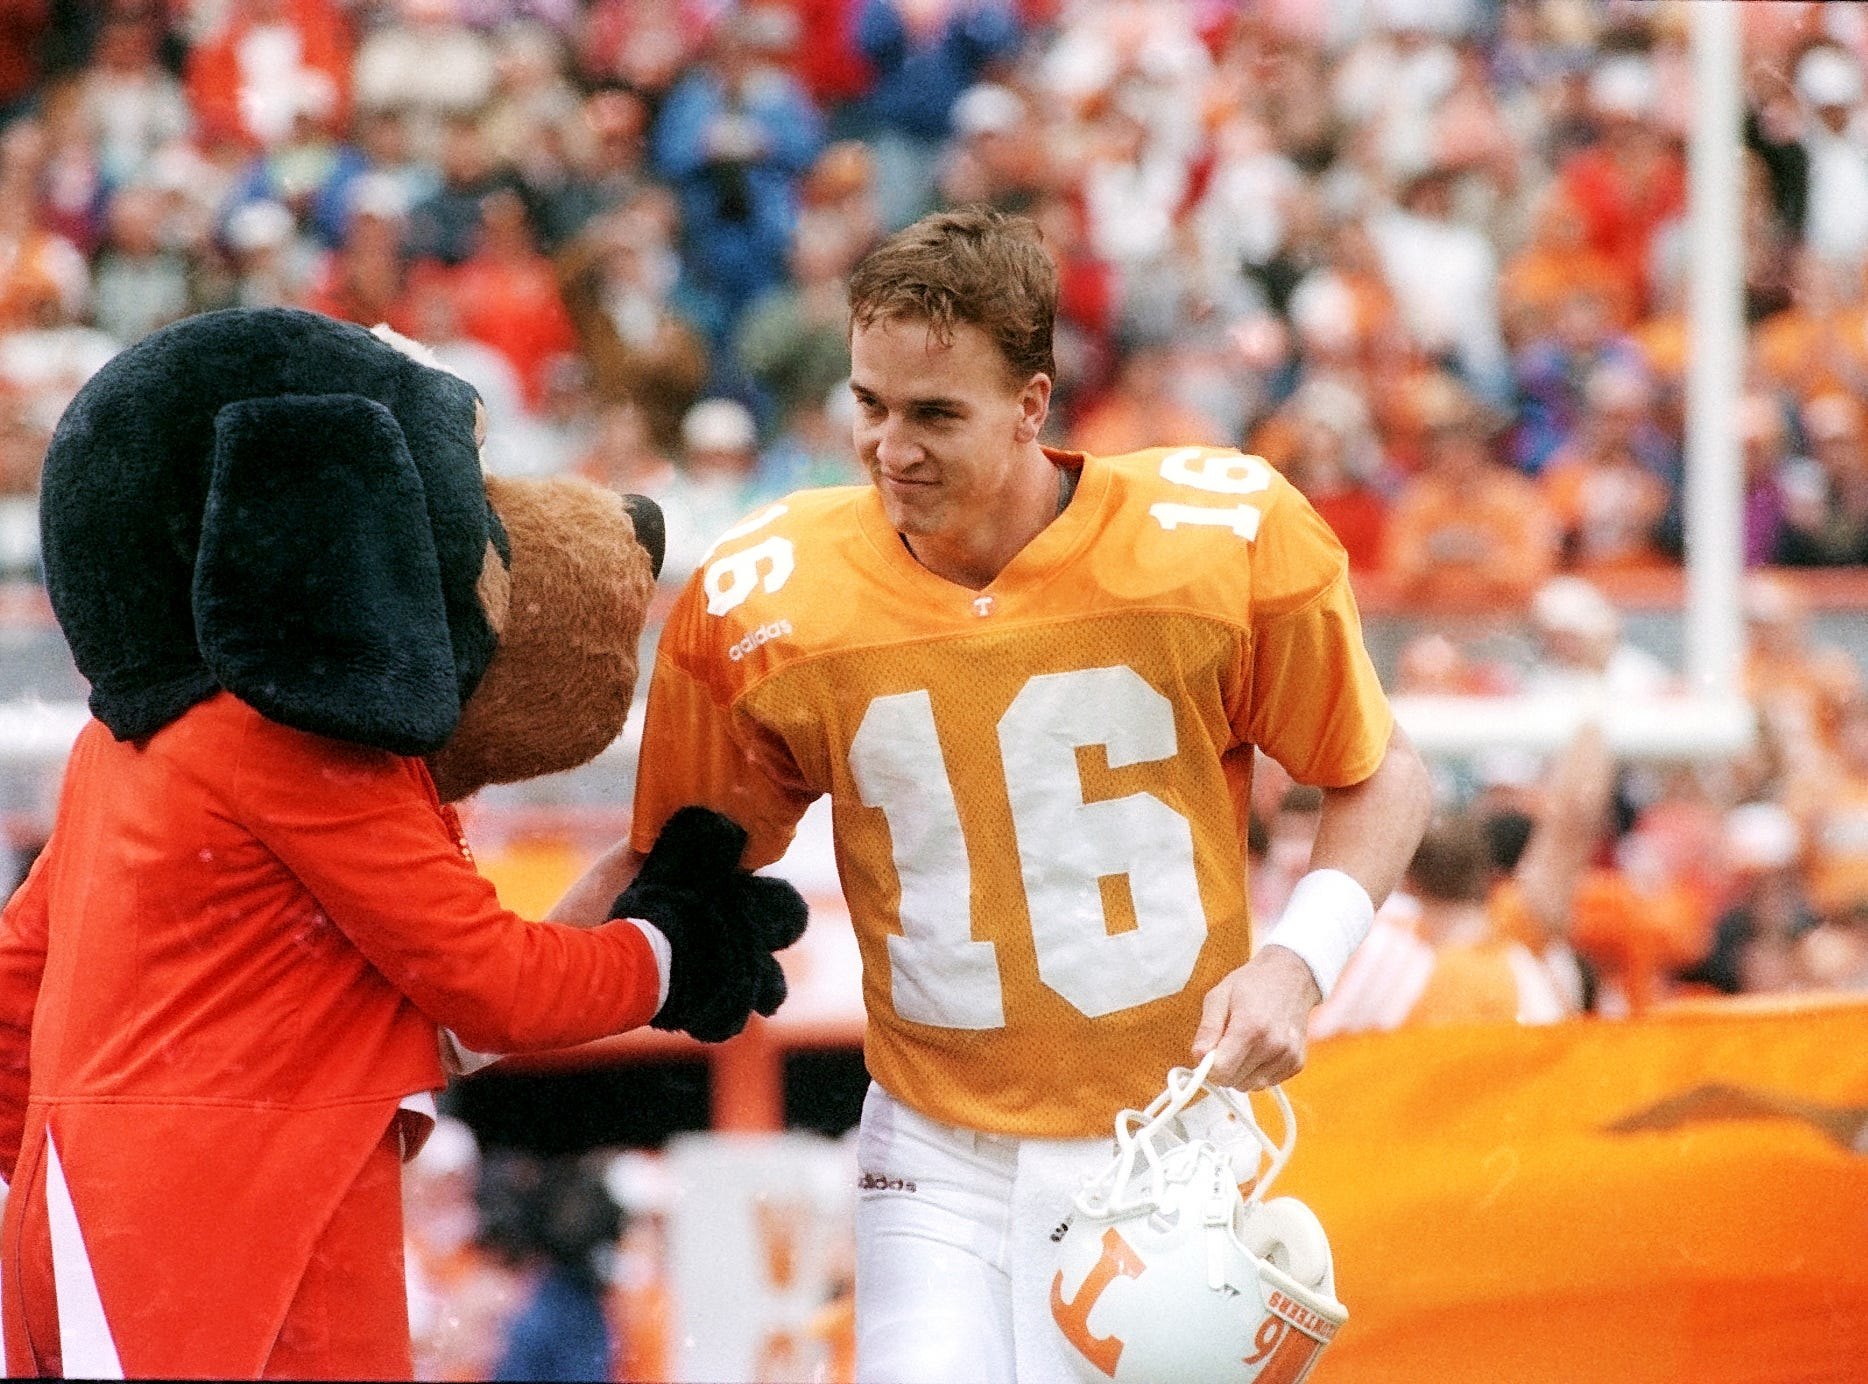 Tennessee quarterback Peyton Manning is greeted by Vol mascot Smokey before the Vanderbilt game Nov. 29, 1997, at Neyland Stadium. It was Manning's final home game.